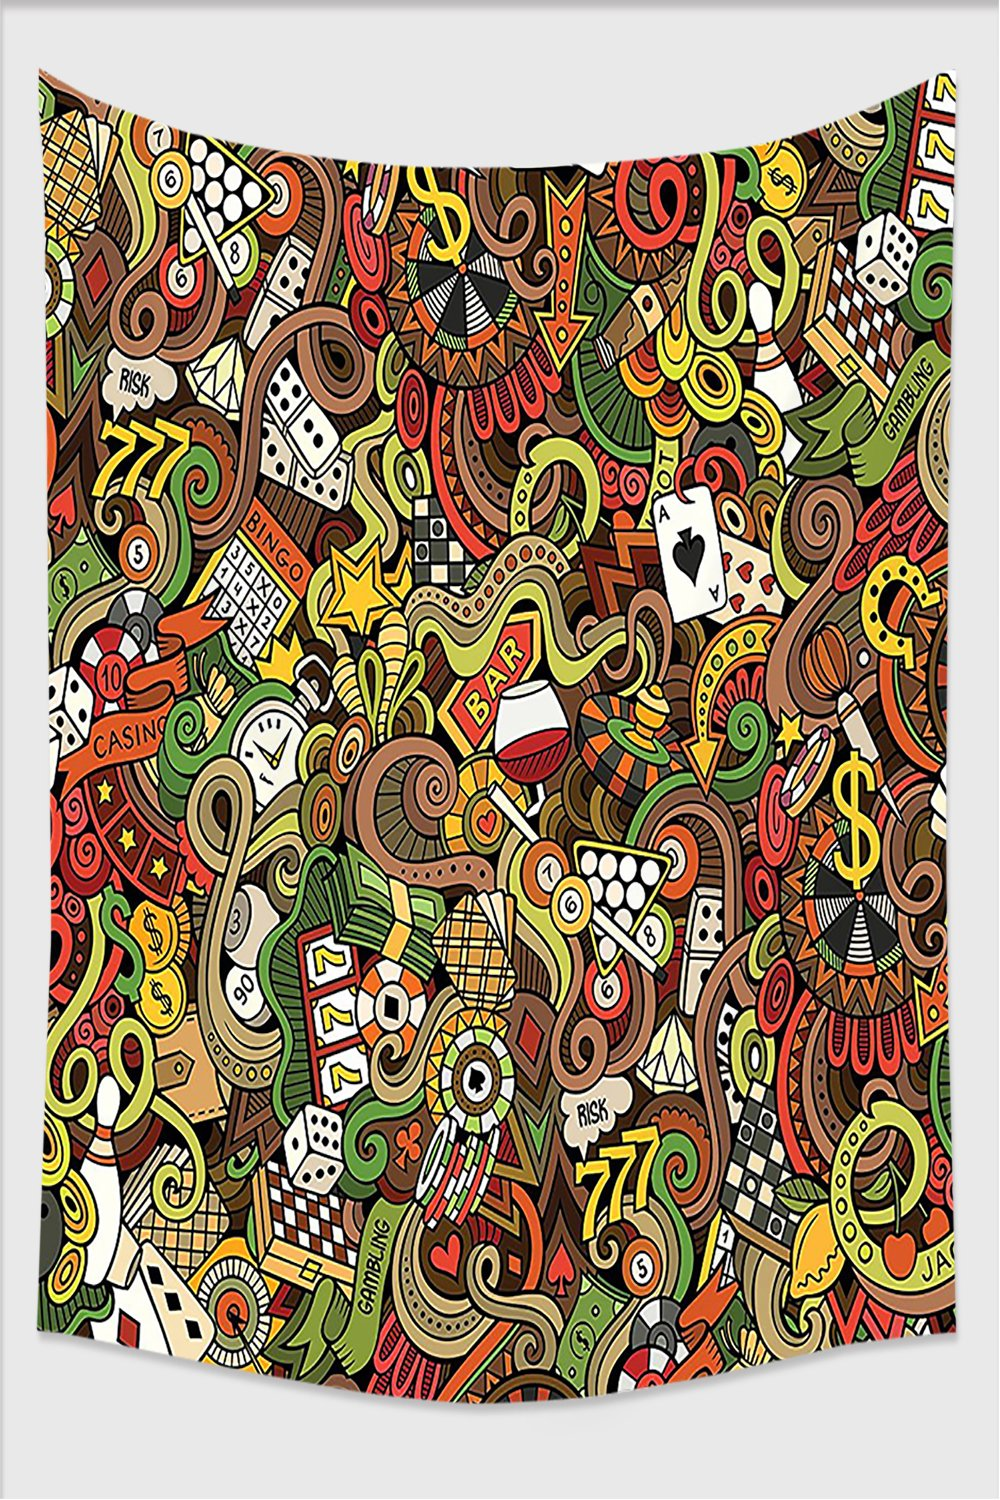 Nalahome-Casino Decorations Doodles Style Art Bingo Excitement Checkers King Tambourine Vegas Tapestry Wall Hanging Wall Tapestries 59L x 39.3W Inches